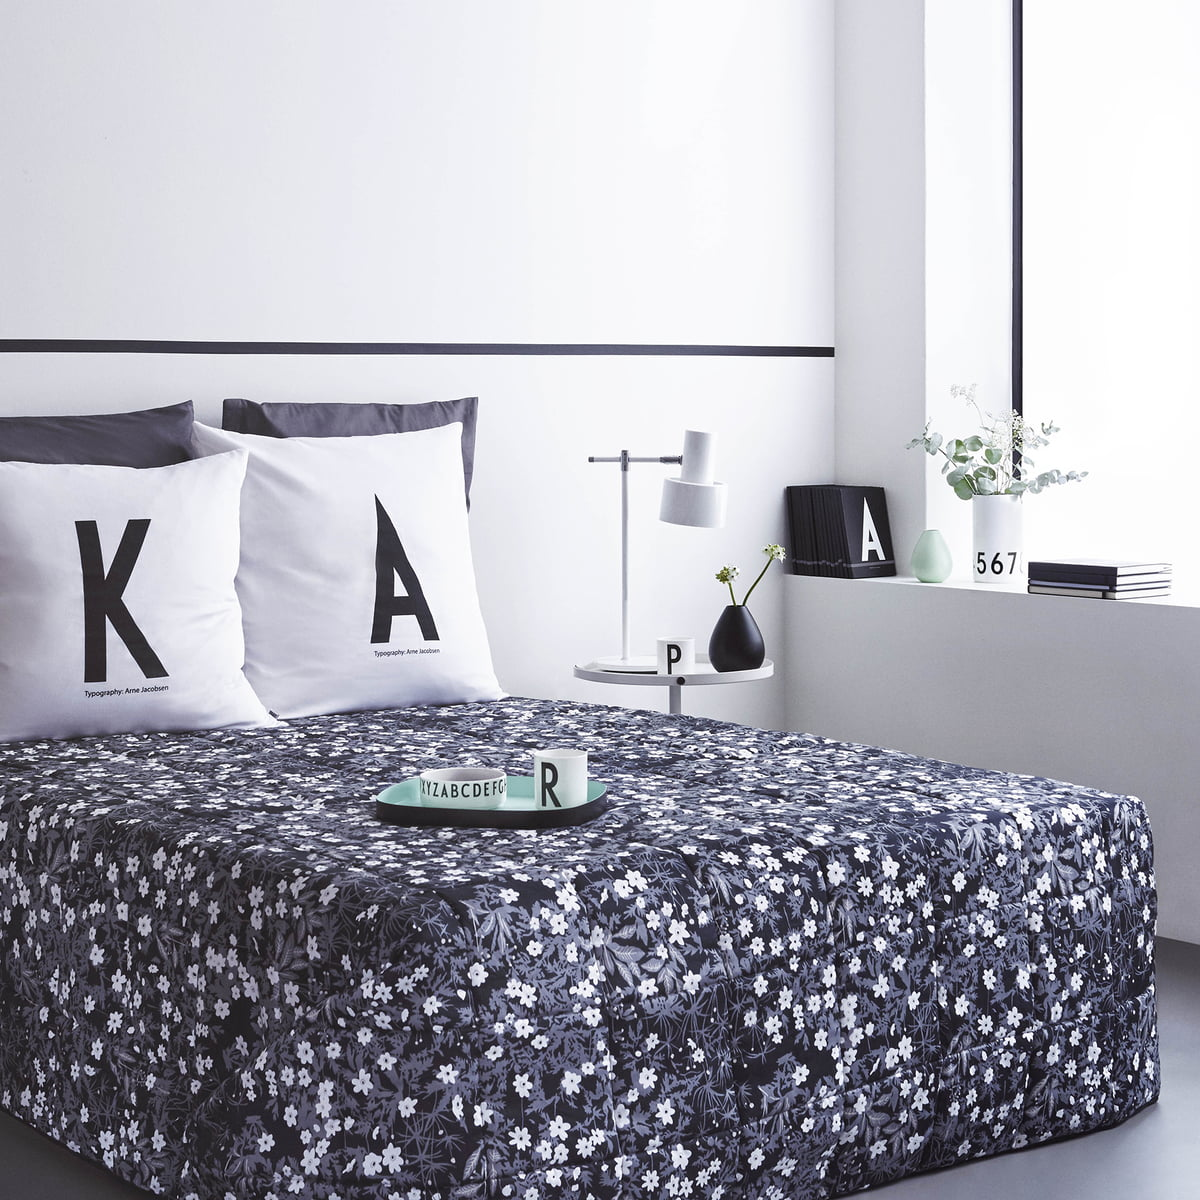 blumen tagesdecke von design letters im shop. Black Bedroom Furniture Sets. Home Design Ideas